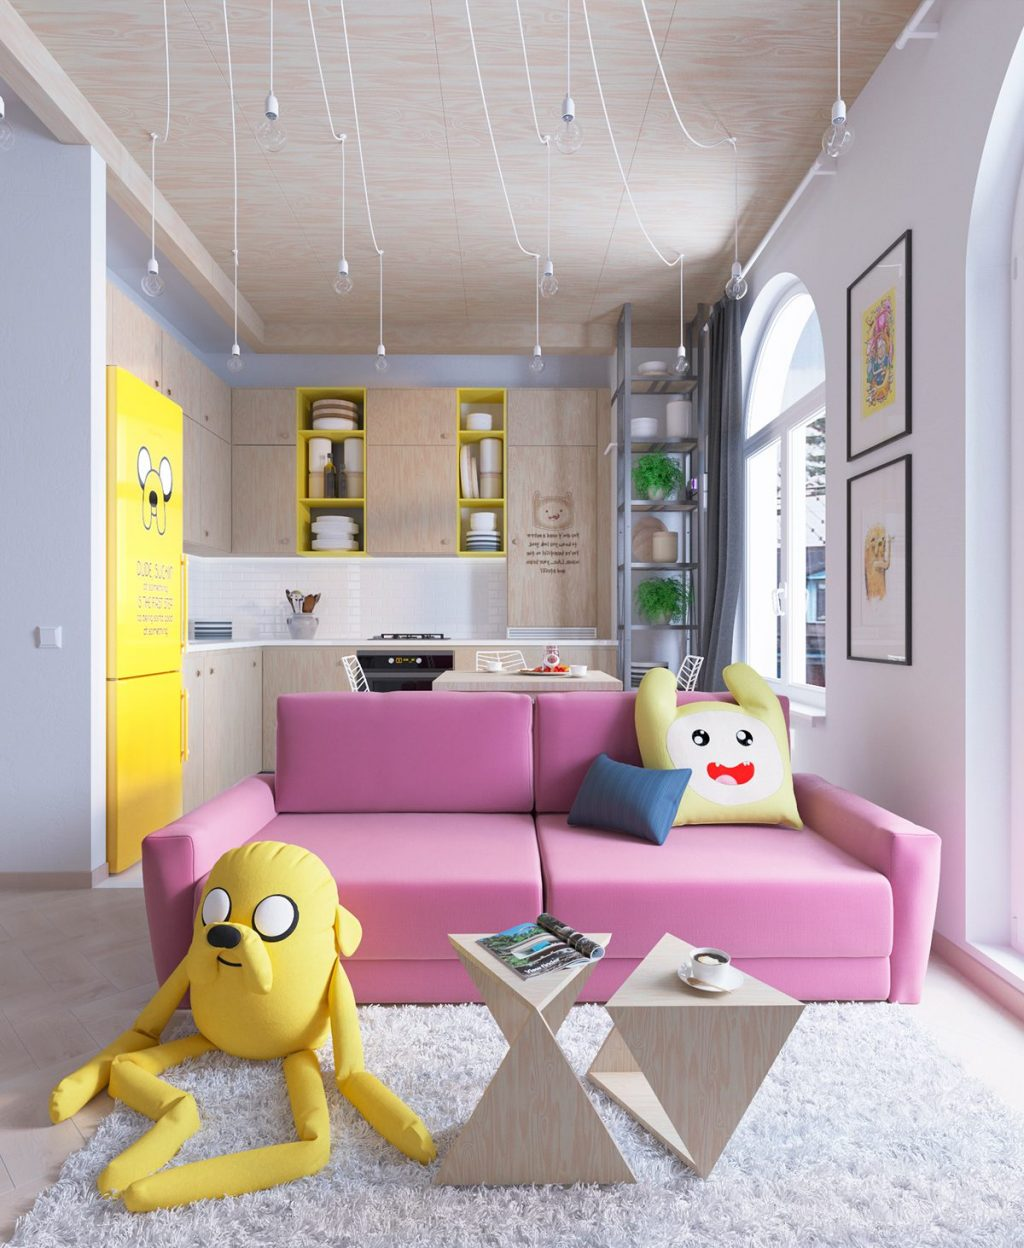 Bright Homes In Three Styles: Pop Art, Scandinavian, And